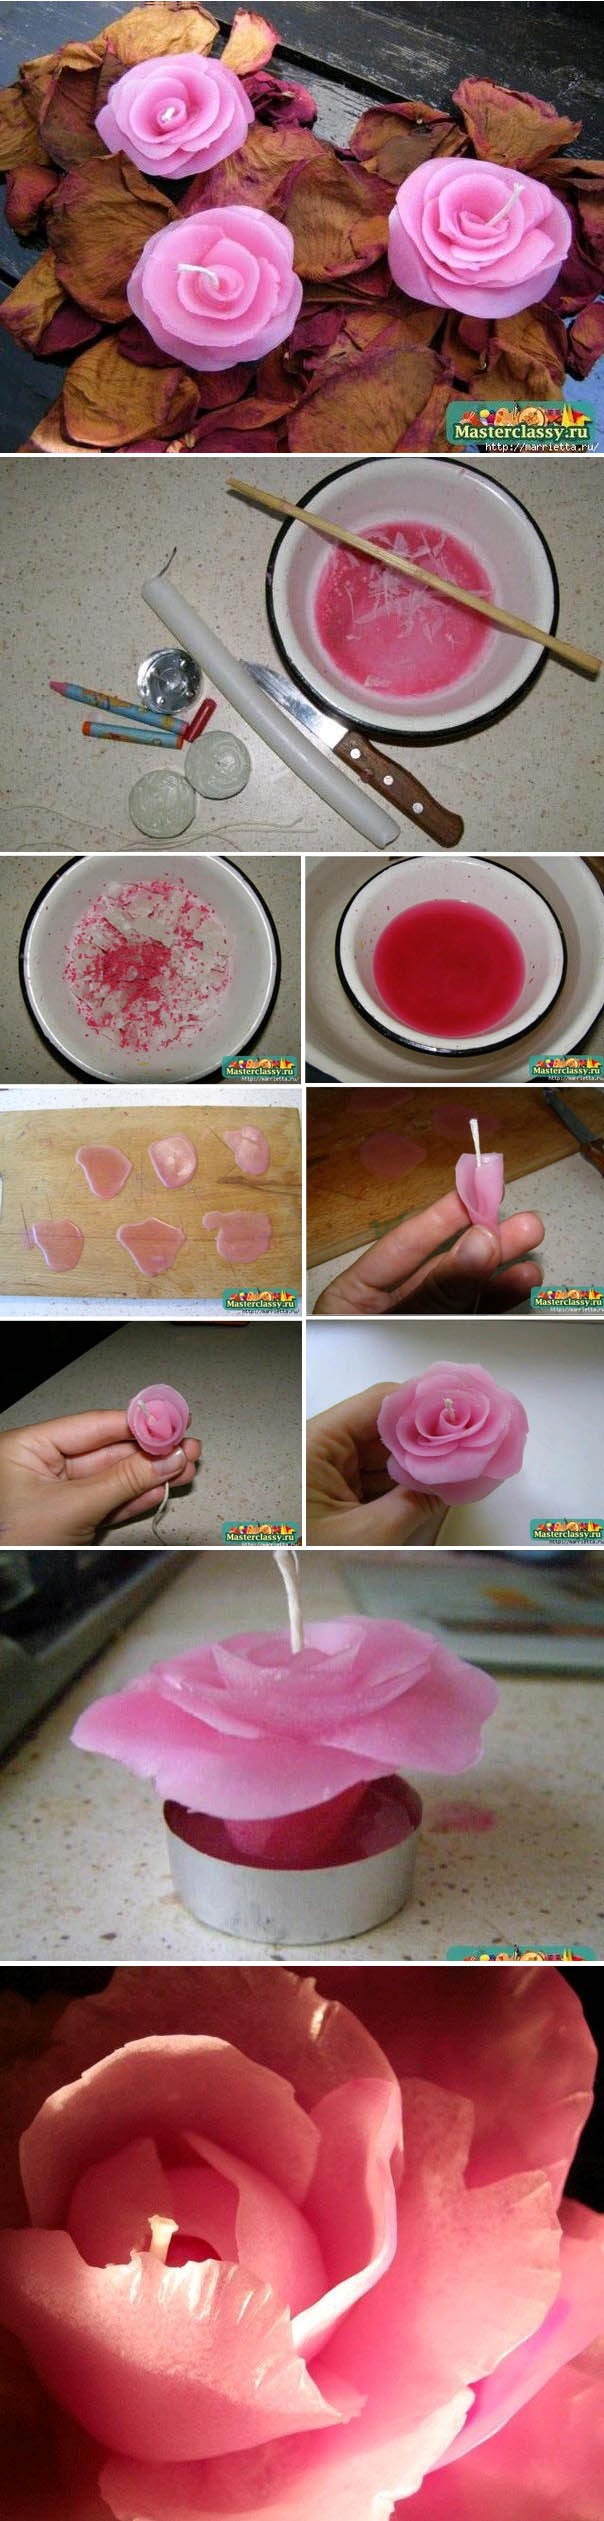 DIY a rose candle tutorial for wedding ideas